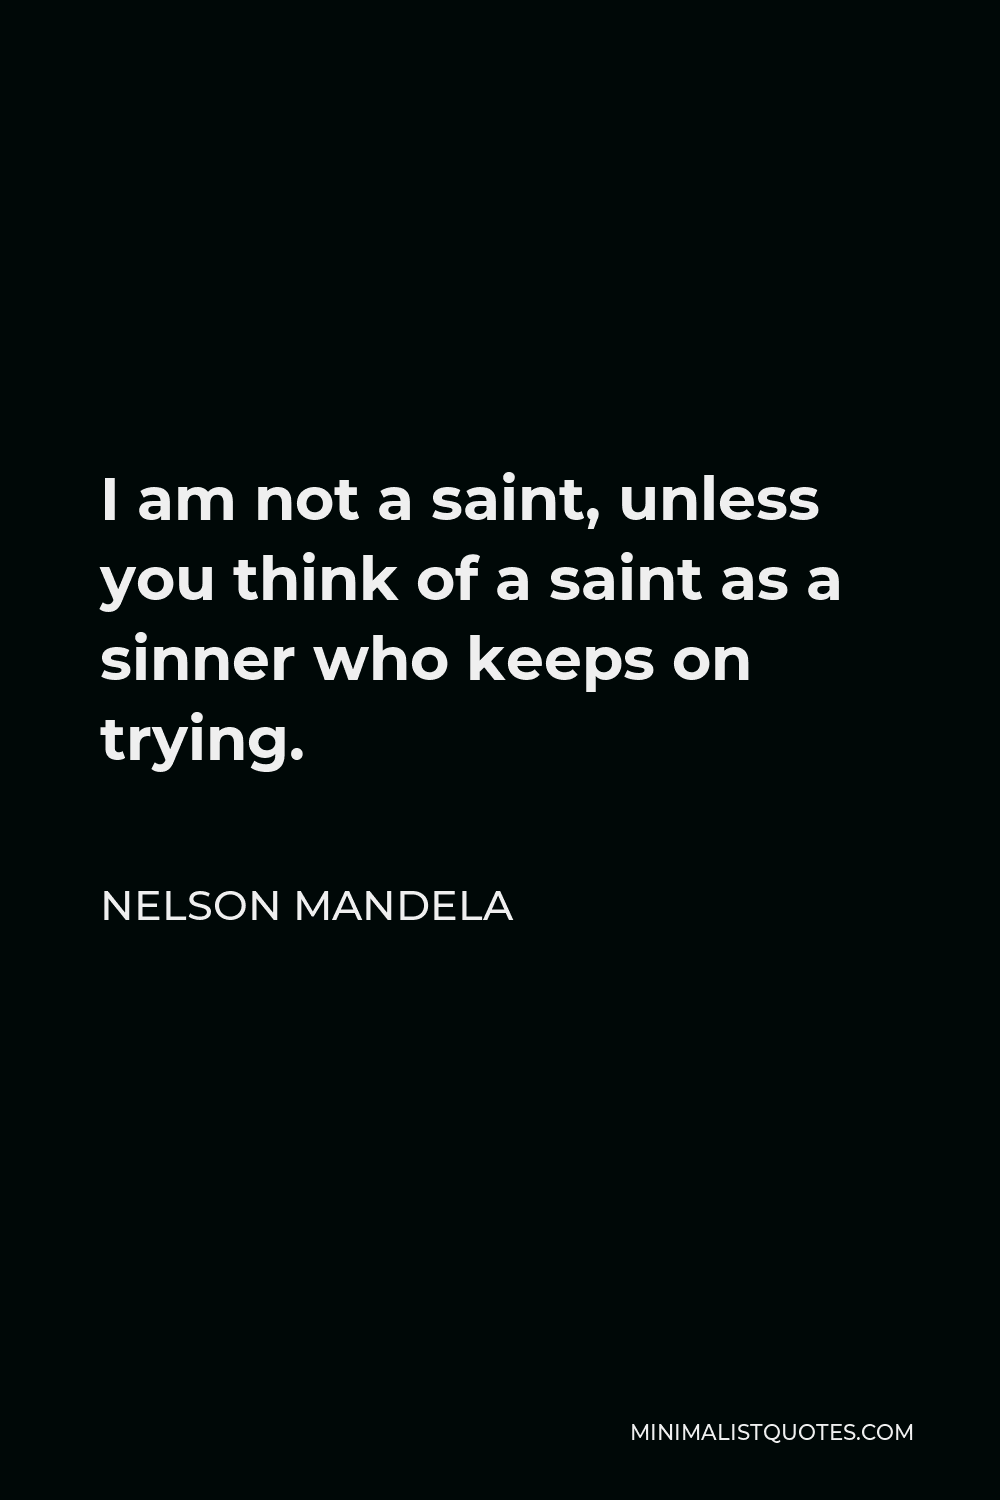 Nelson Mandela Quote I Am Not A Saint Unless You Think Of A Saint As A Sinner Who Keeps On Trying